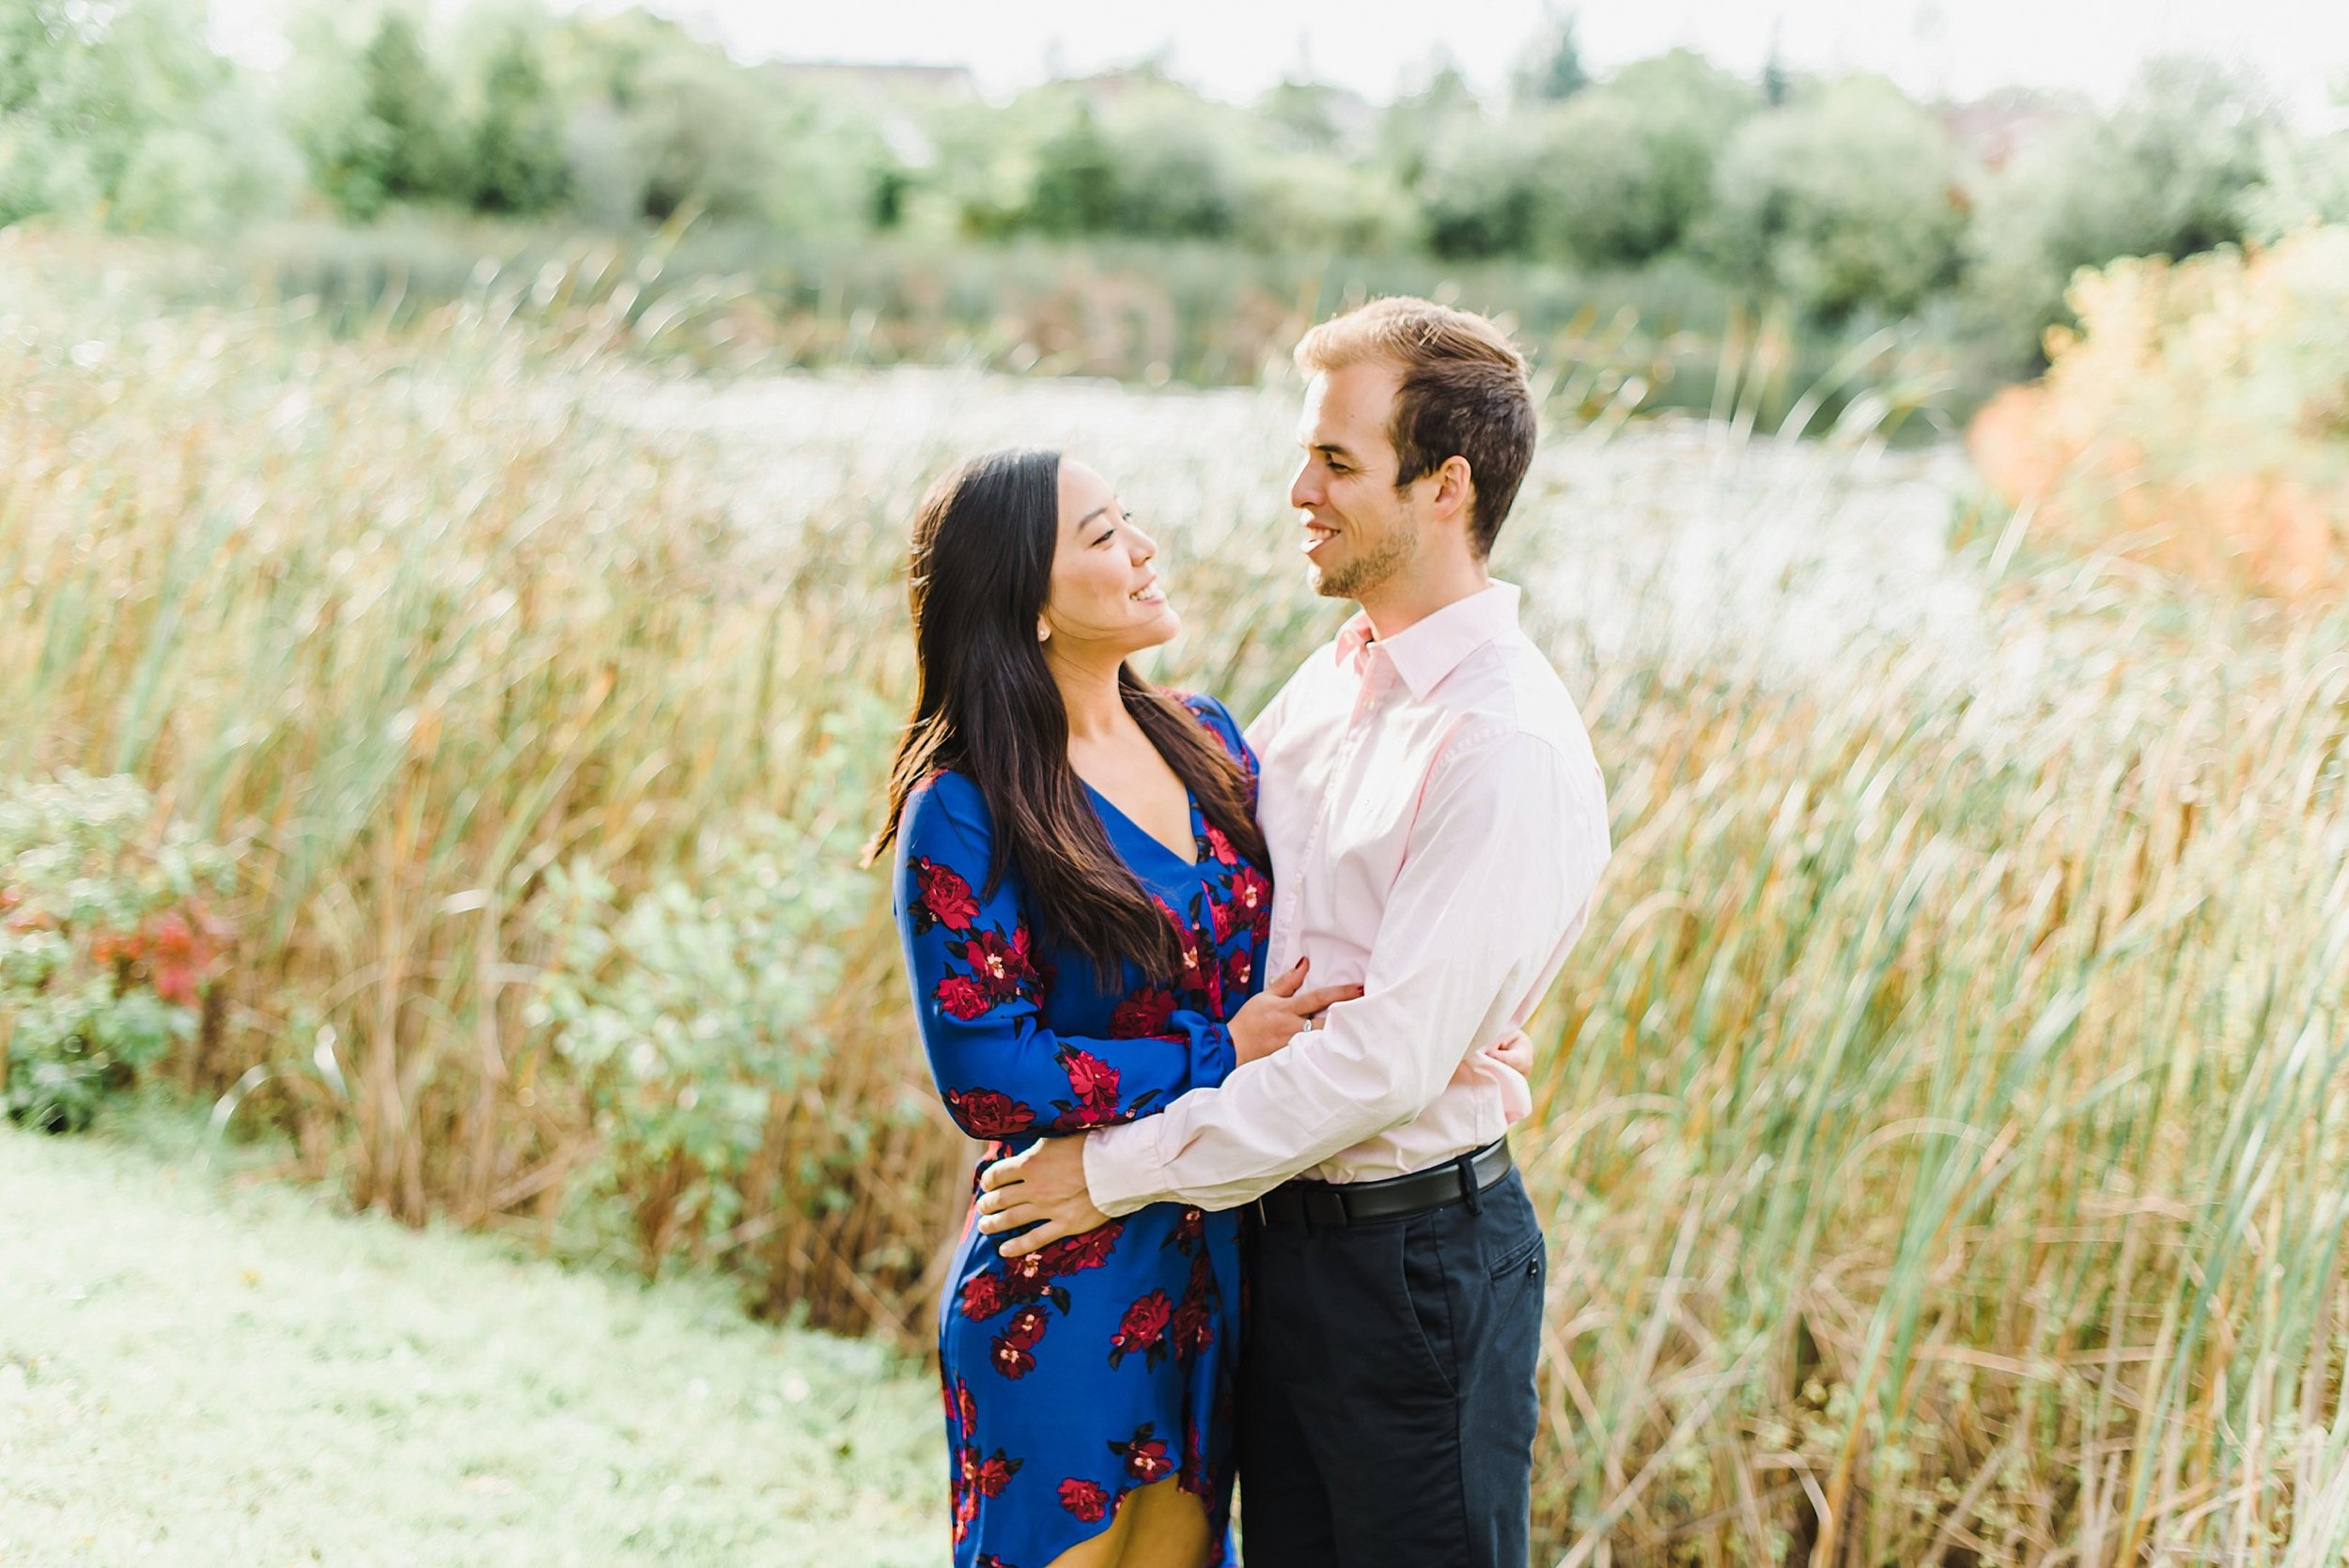 light airy indie fine art ottawa wedding photographer | Ali and Batoul Photography_0910.jpg